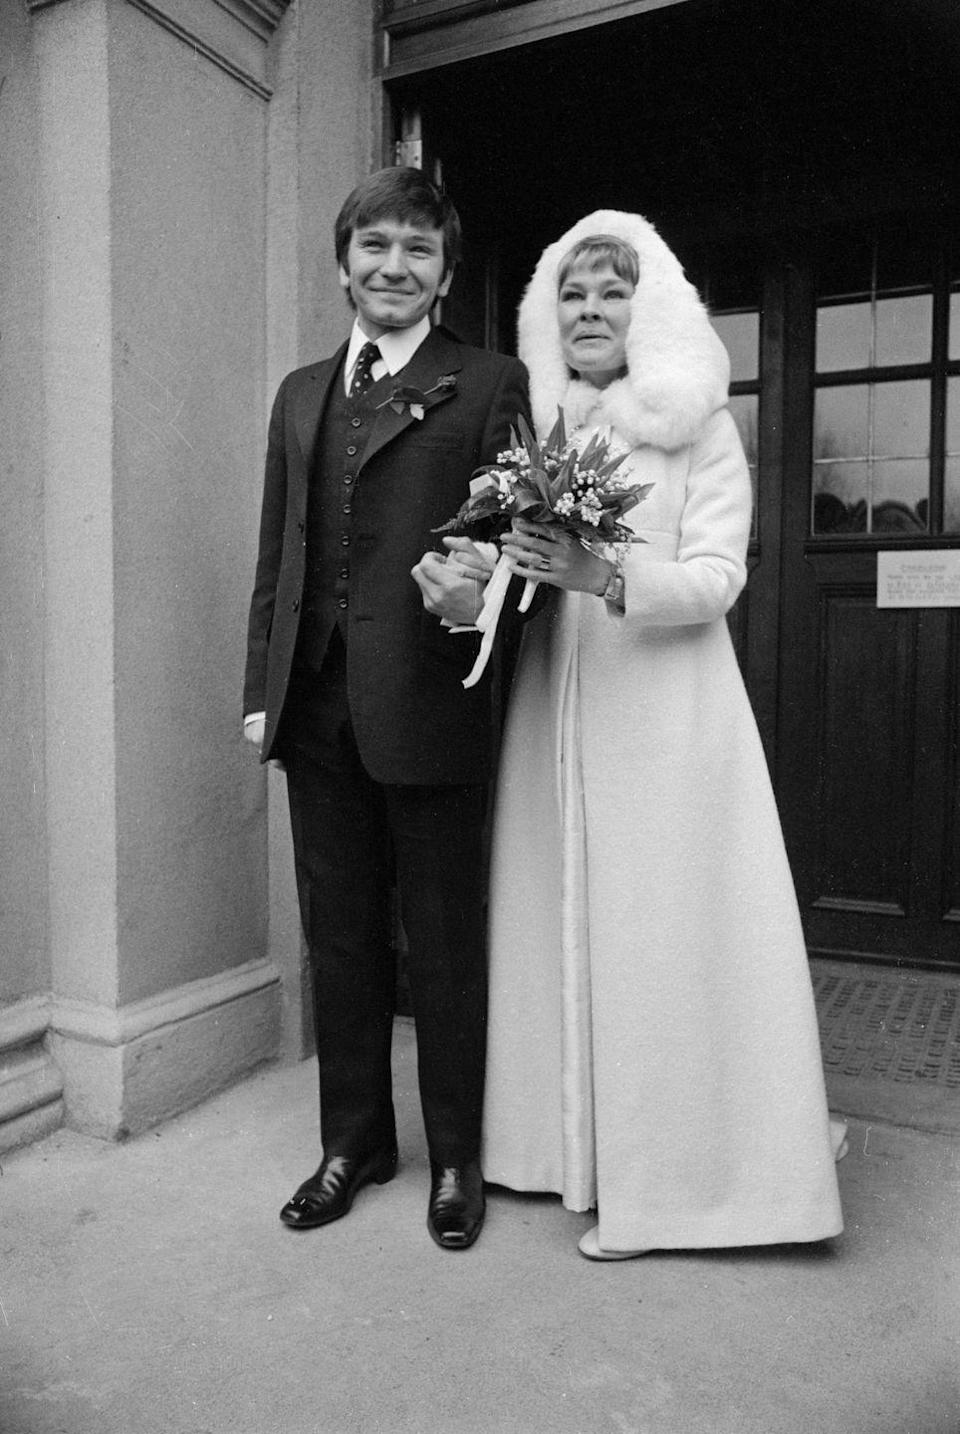 <p>The Royal Shakespeare Company players, Judi Dench and Michael Williams, tied the knot at St. Mary's Catholic Church in Hampstead, London in 1971. The pair remained married until 2001 when Williams died at the age of 65. Dench has yet to remarry. <br></p>